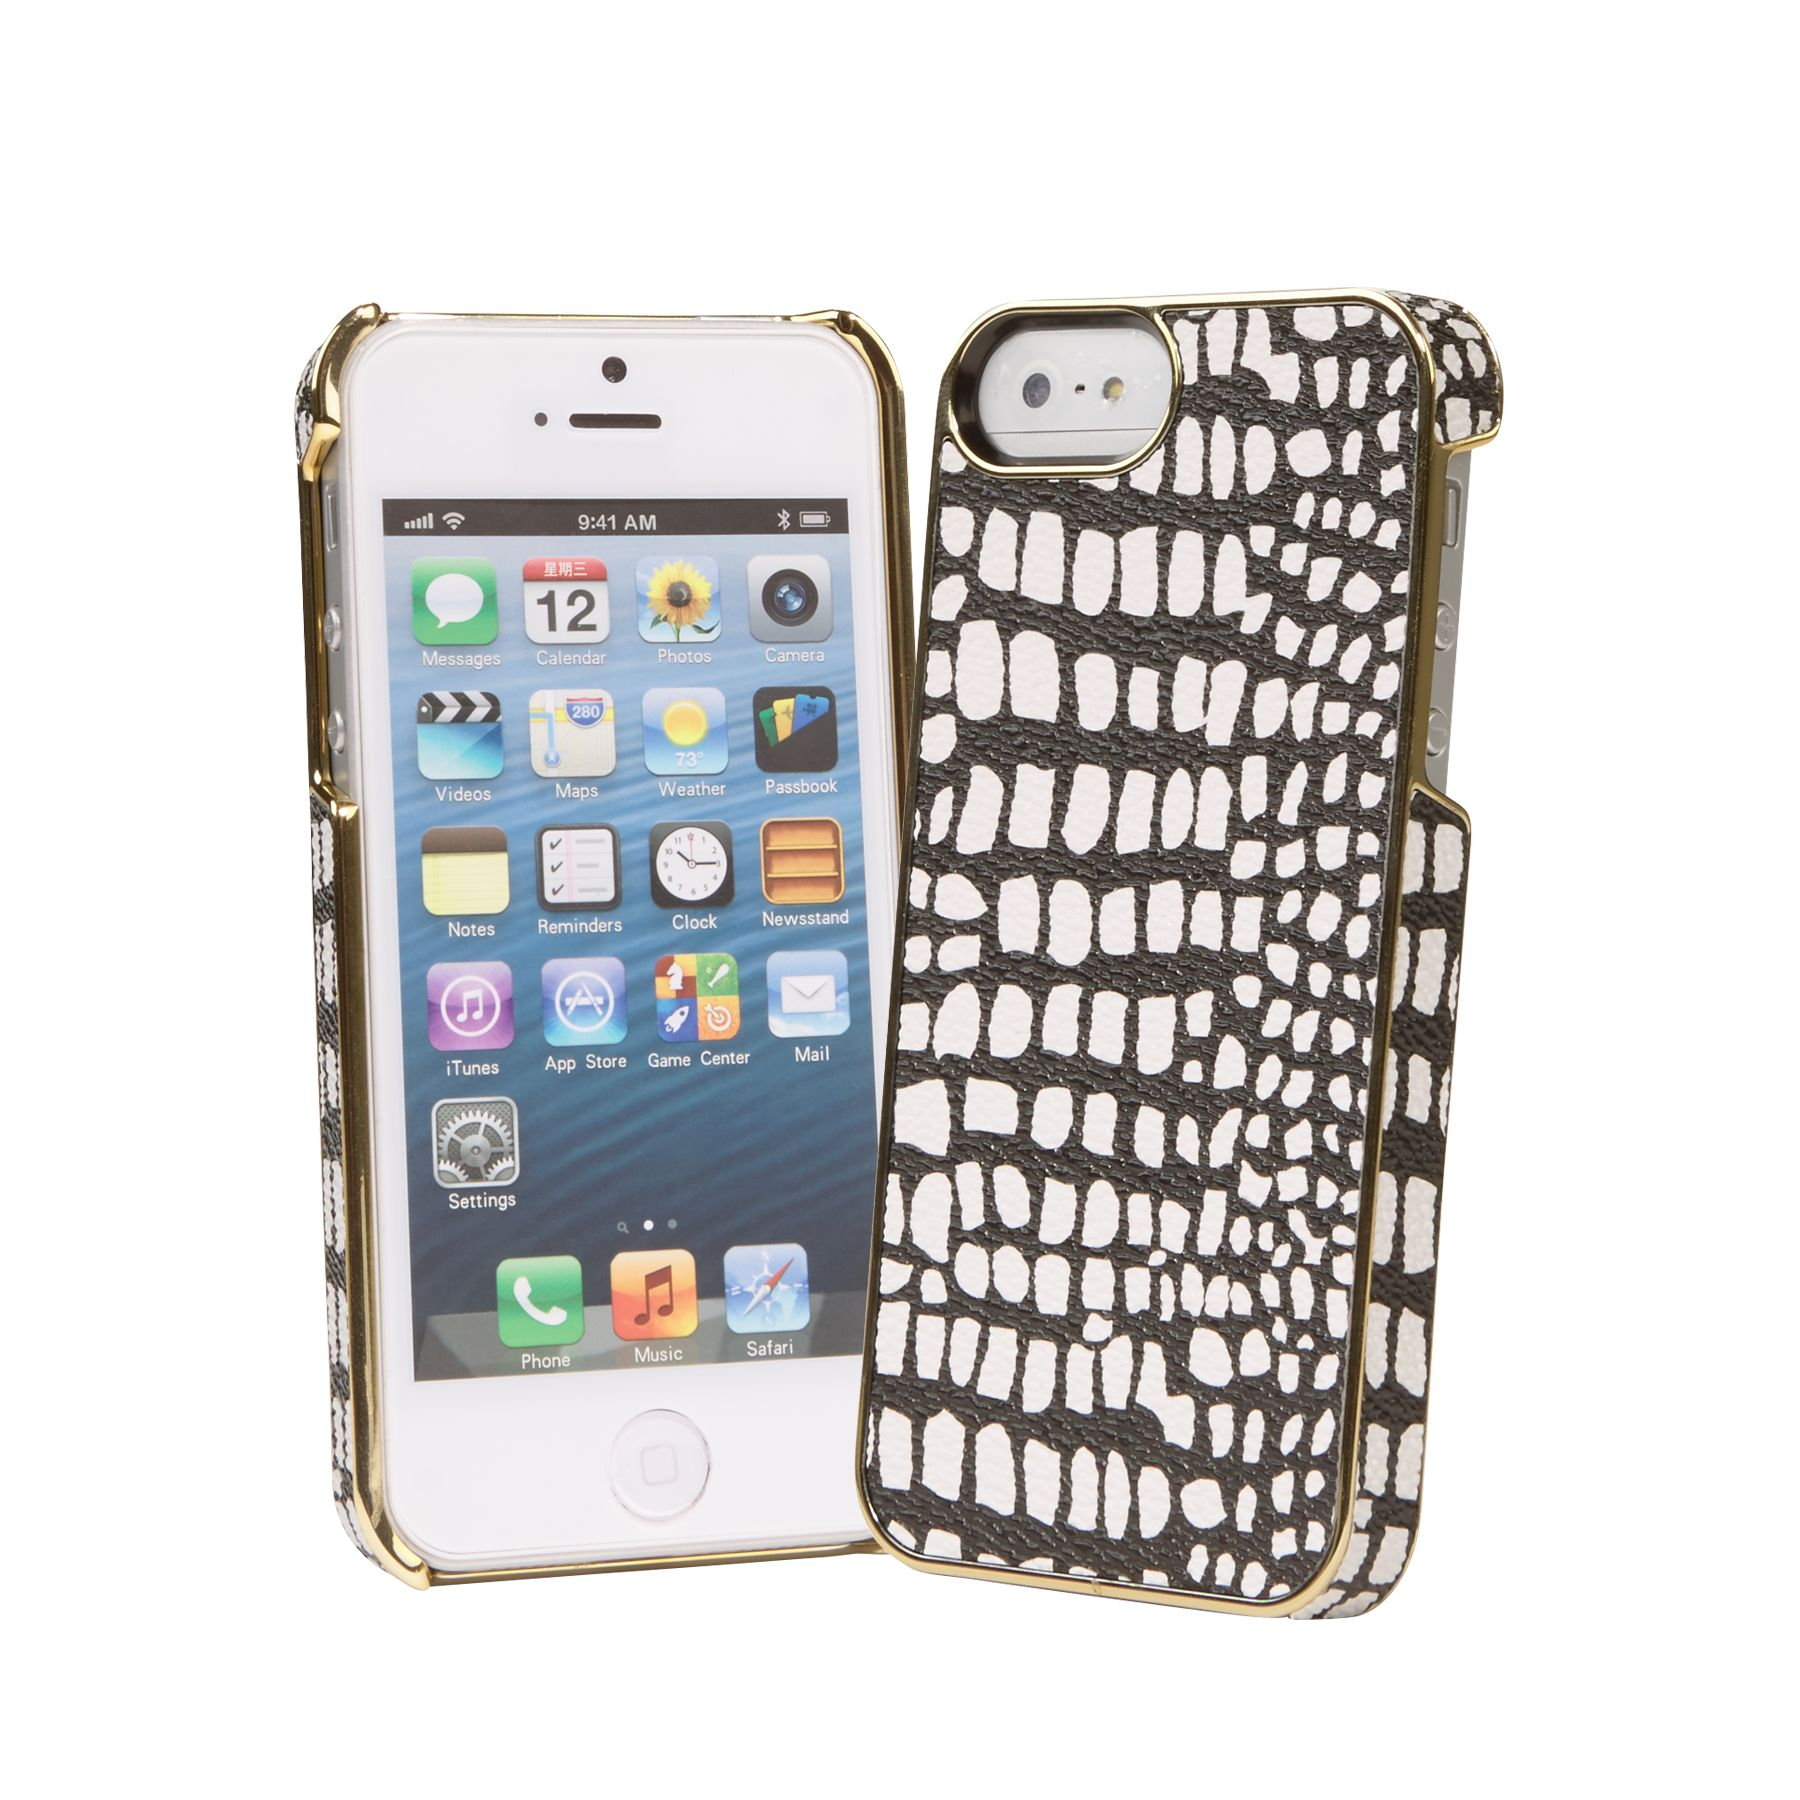 vera bradley iphone 5 case vera bradley b b snap on phone for iphone 5 ebay 18147